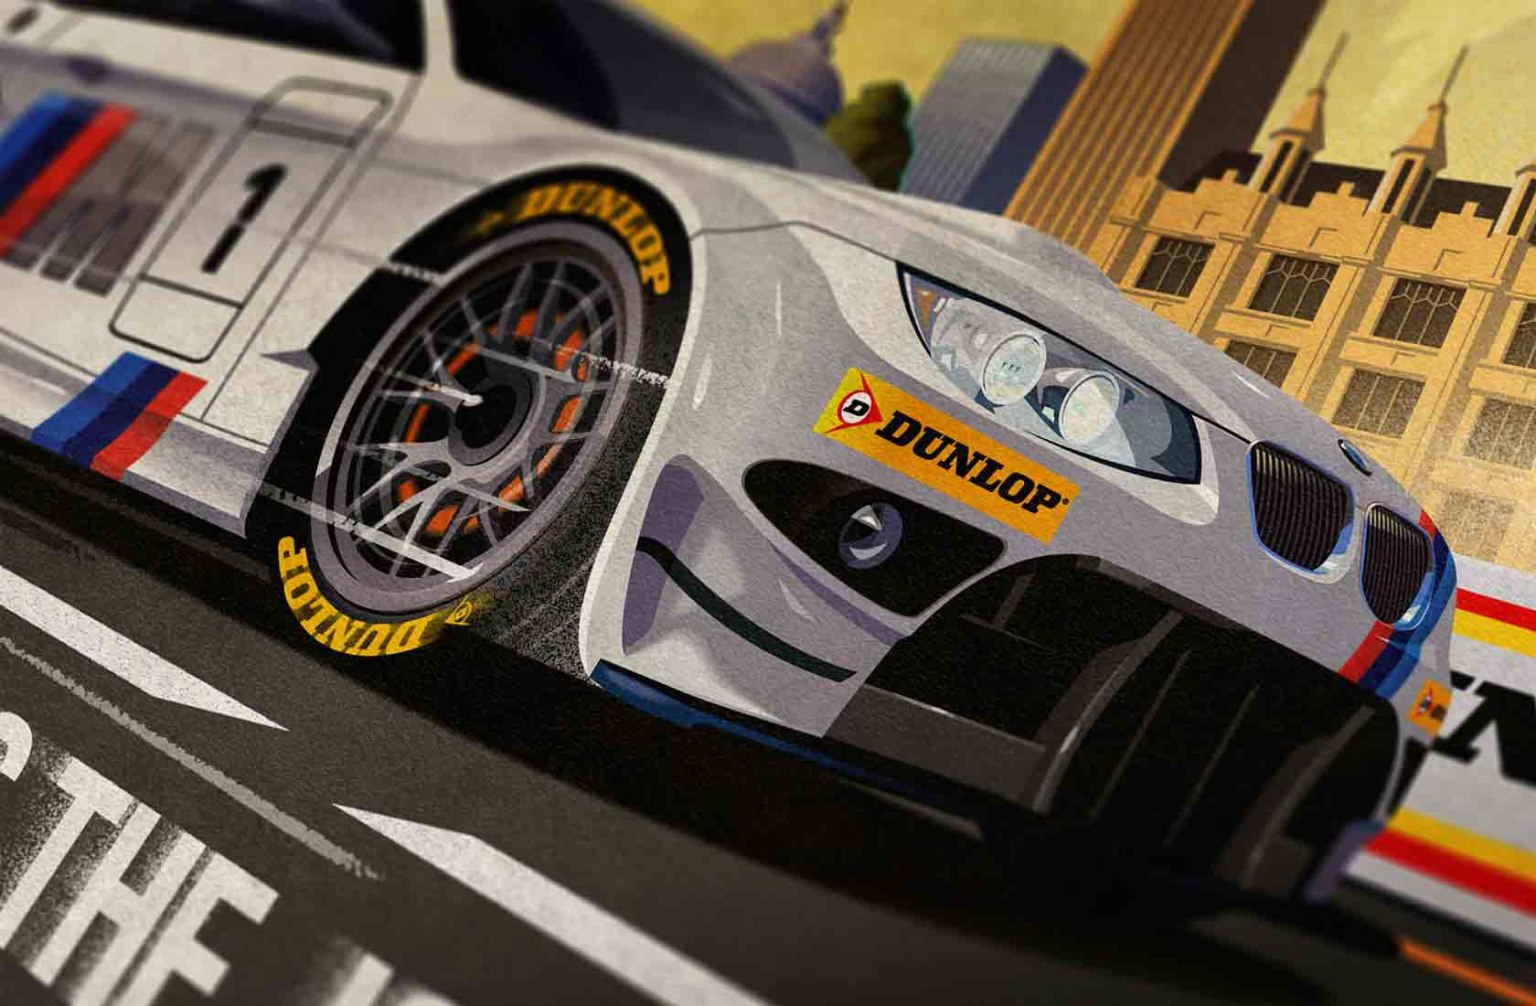 Dunlop Tires Poster Campaign